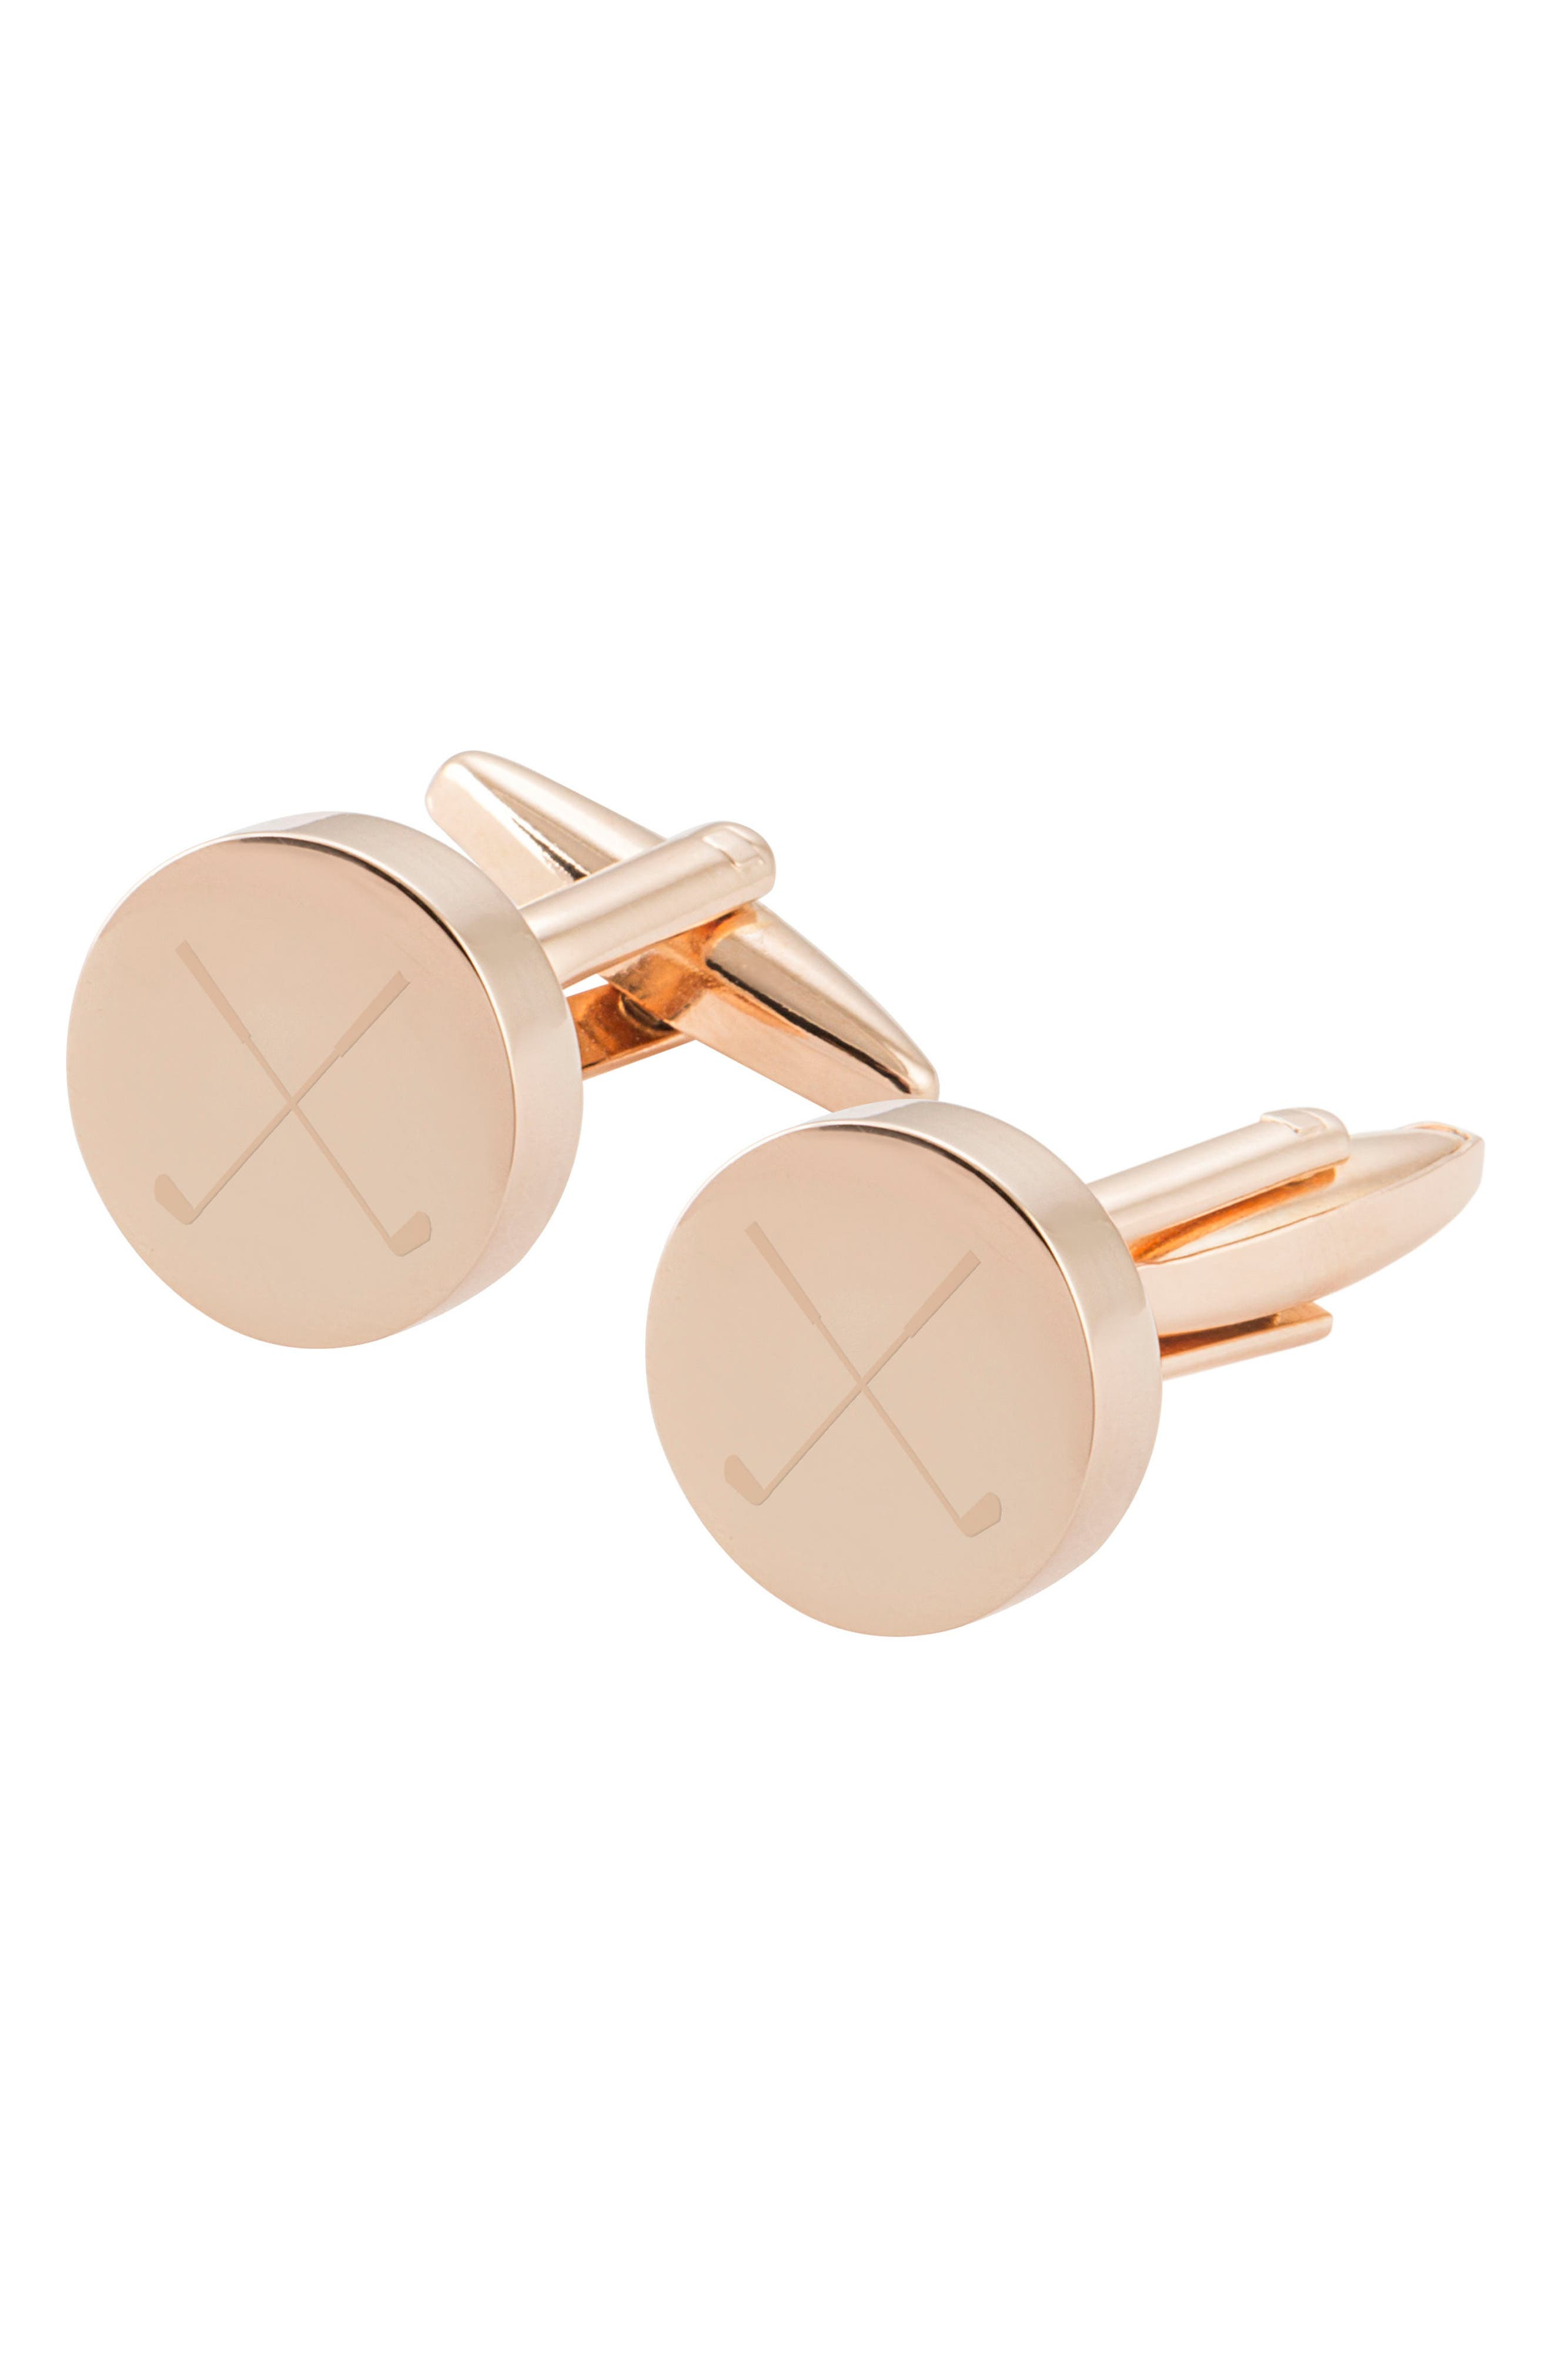 Golf Cuff Links,                         Main,                         color, Rose Gold